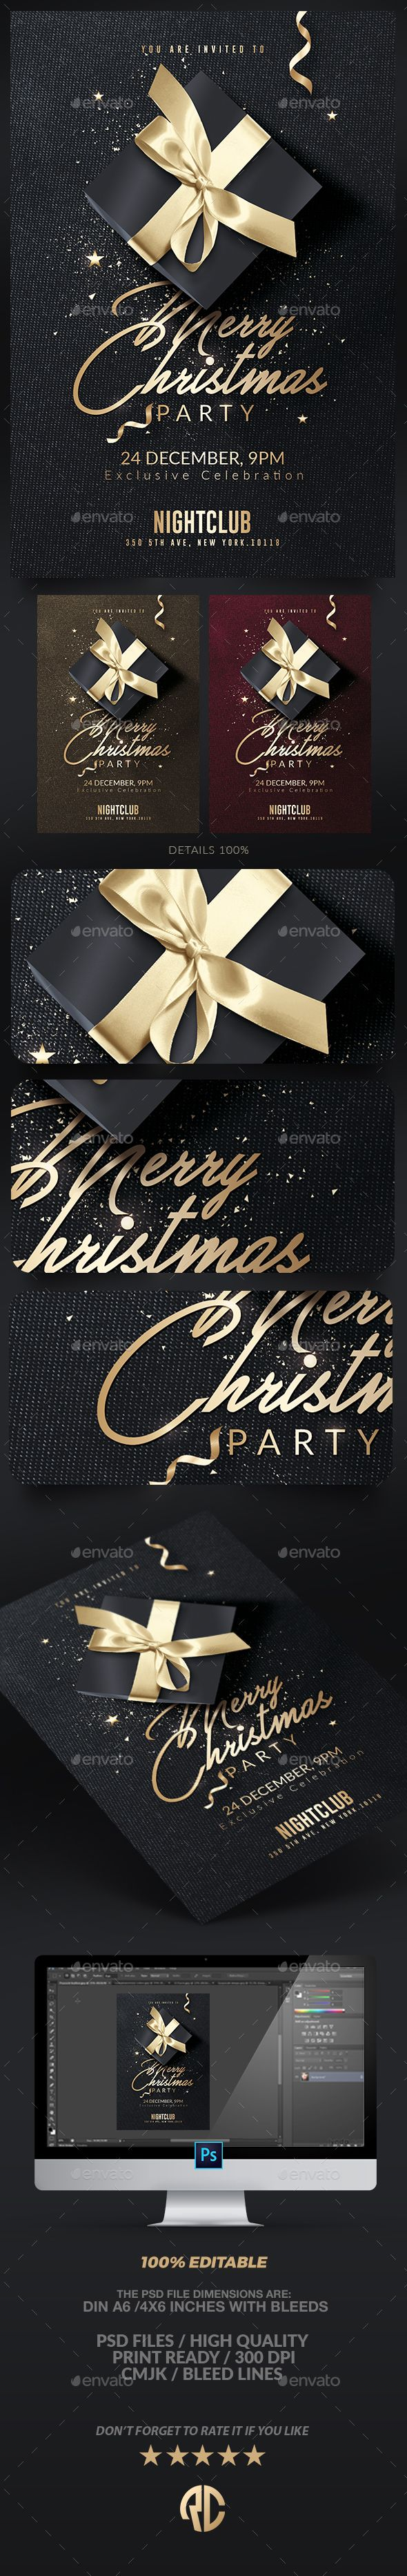 Classy Christmas Invitation | Psd Flyer - Events Flyers